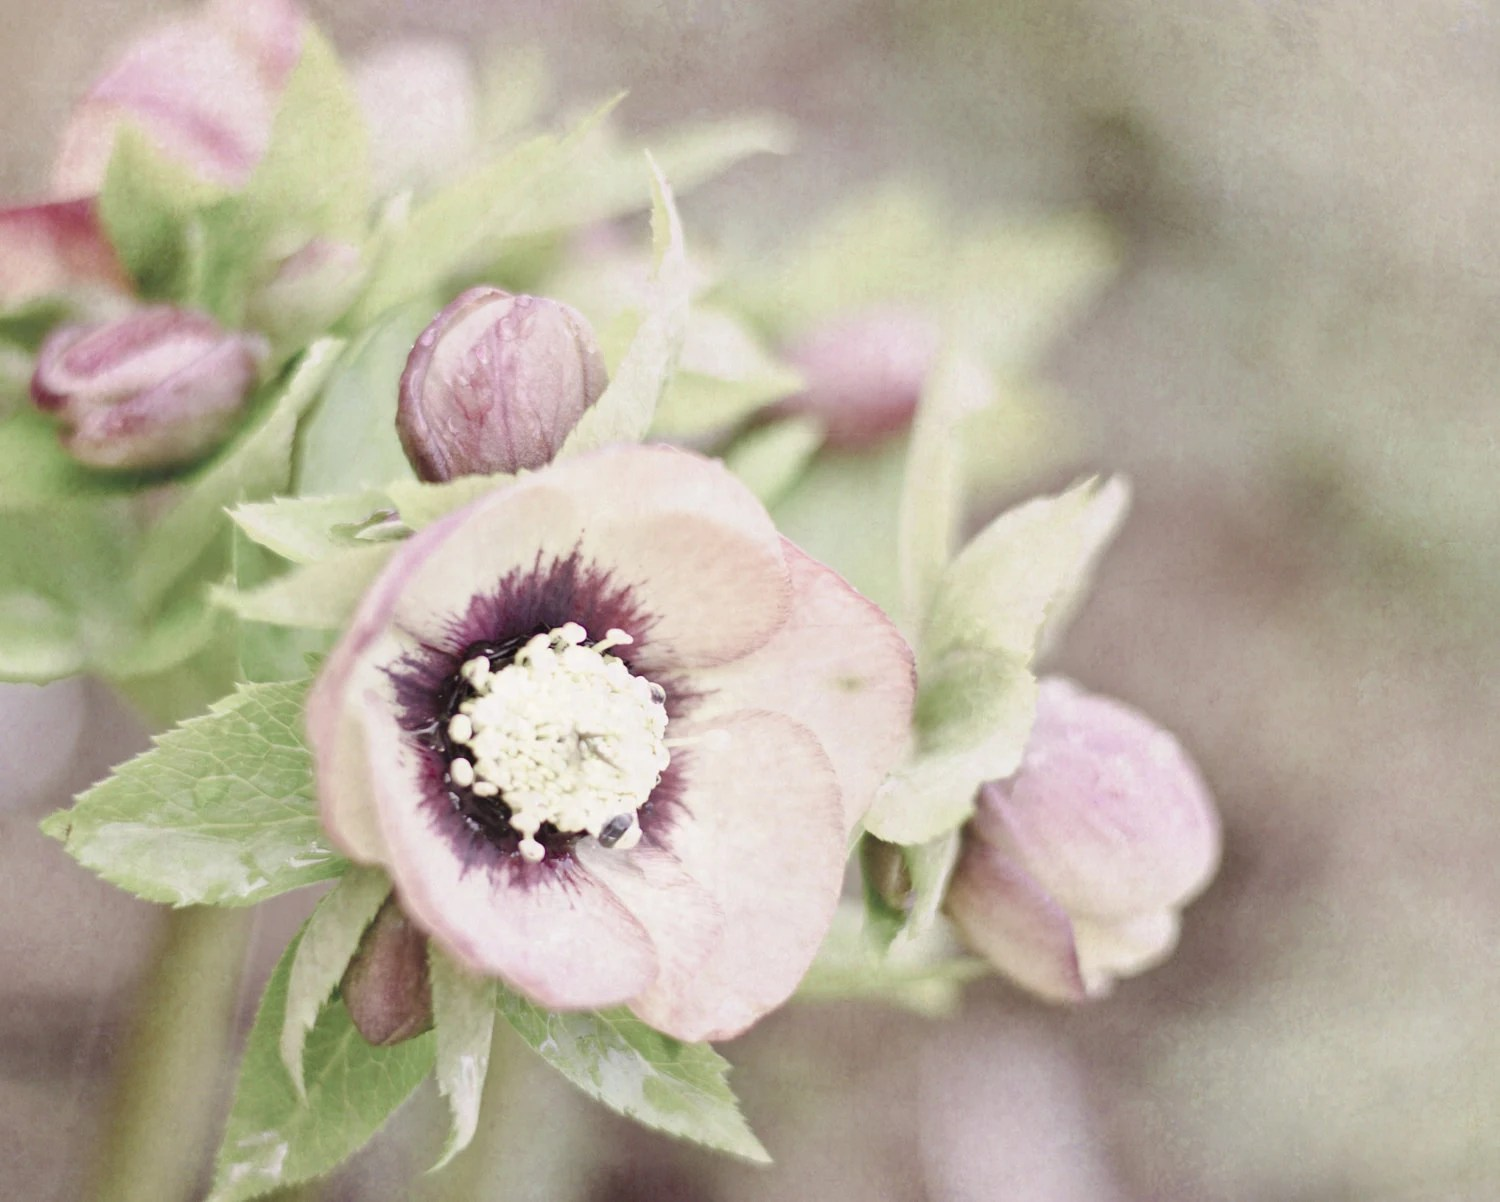 Photograph 8x10 Lenten Rose Flower Print Purple Green Botanical Hellebore Picture Spring Floral Home Decor Easter Wall Art - PureNaturePhotos